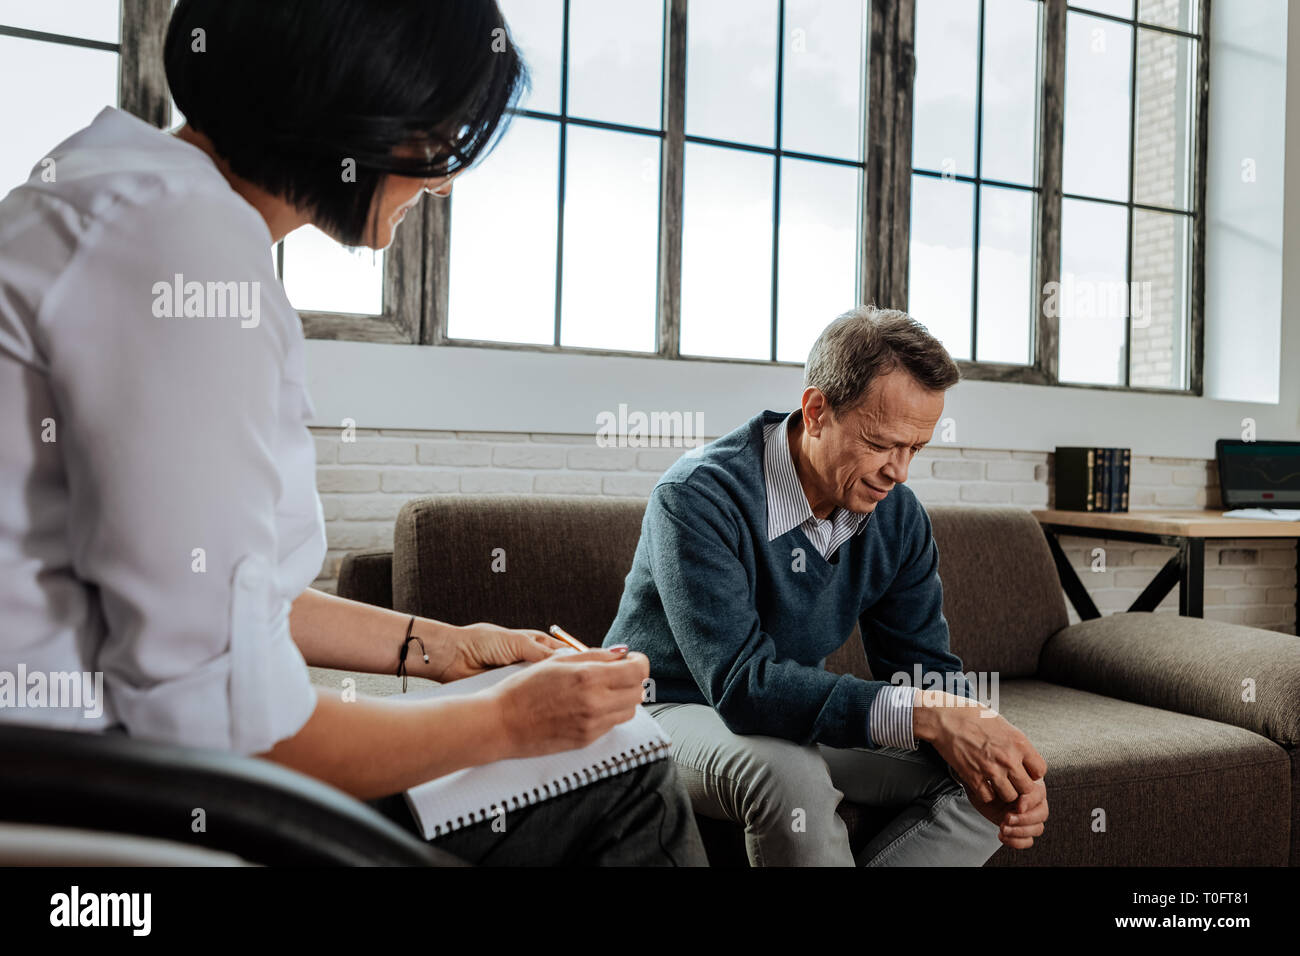 Distressed short-haired old man crying while being in depression - Stock Image